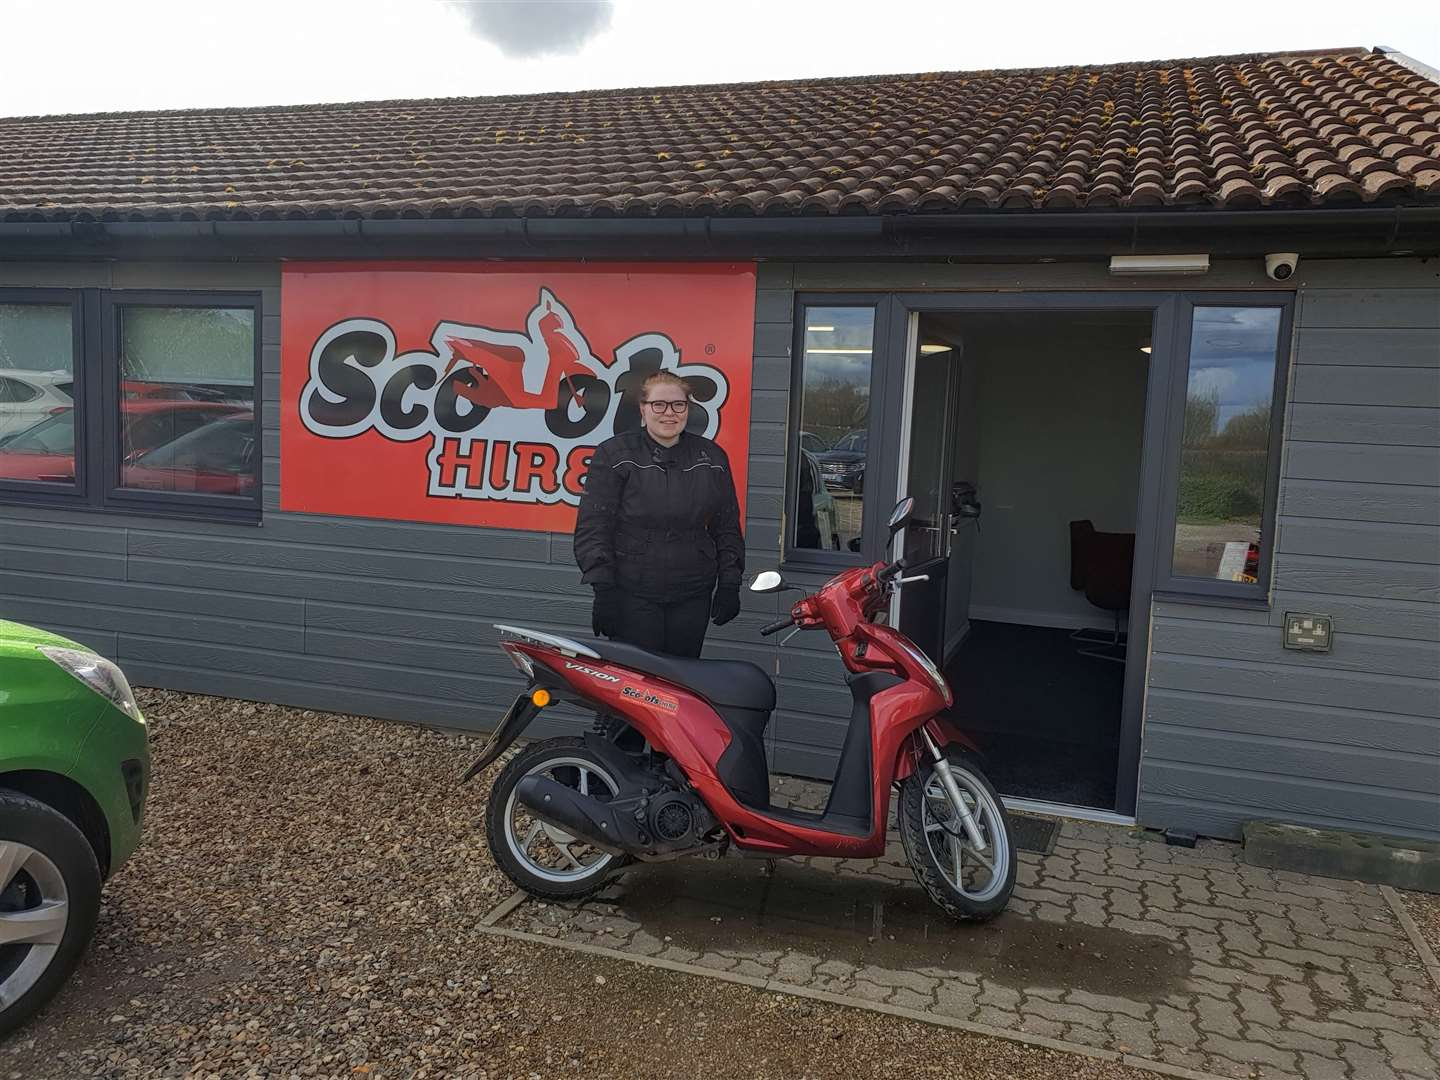 Charlotte Hayes, 18, of Dereham, who uses a Scoots Hire vehicle to get to and from work. (8261169)